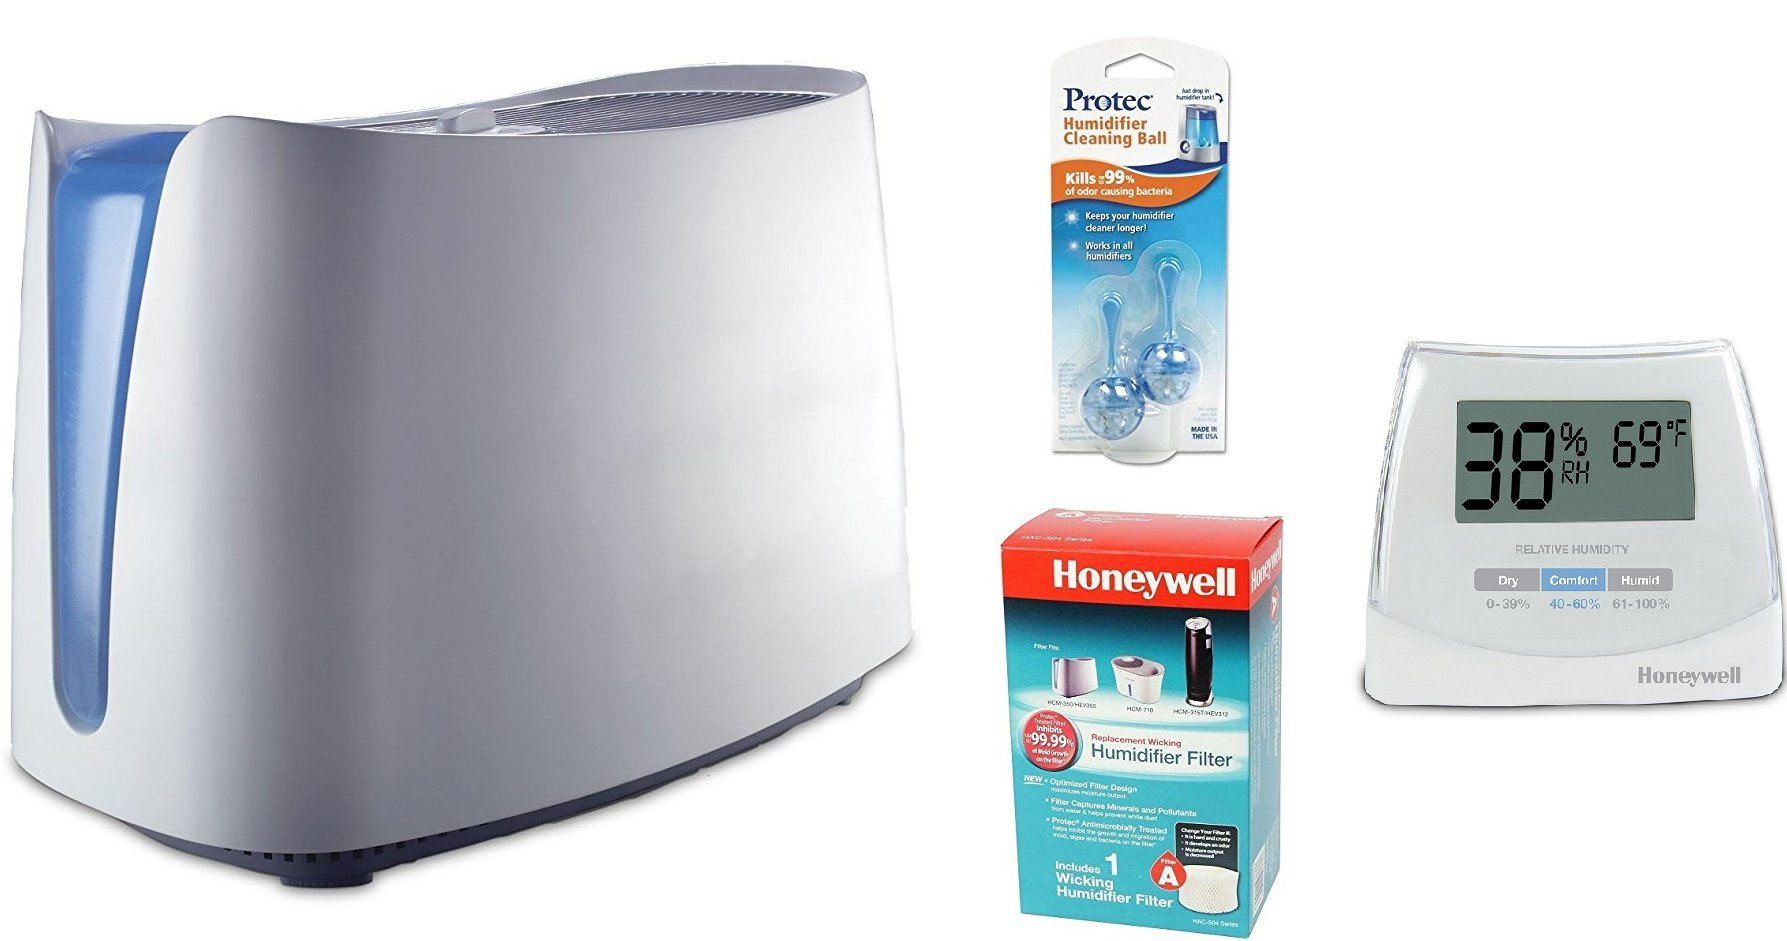 Honeywell HCM350W UV Germ Free Cool Moisture Humidifier and Honeywell HAC-504AW Humidifier Filter, PC2V1 Humidifier Cleaning Cartridge, and Humidity Monitor Bundle